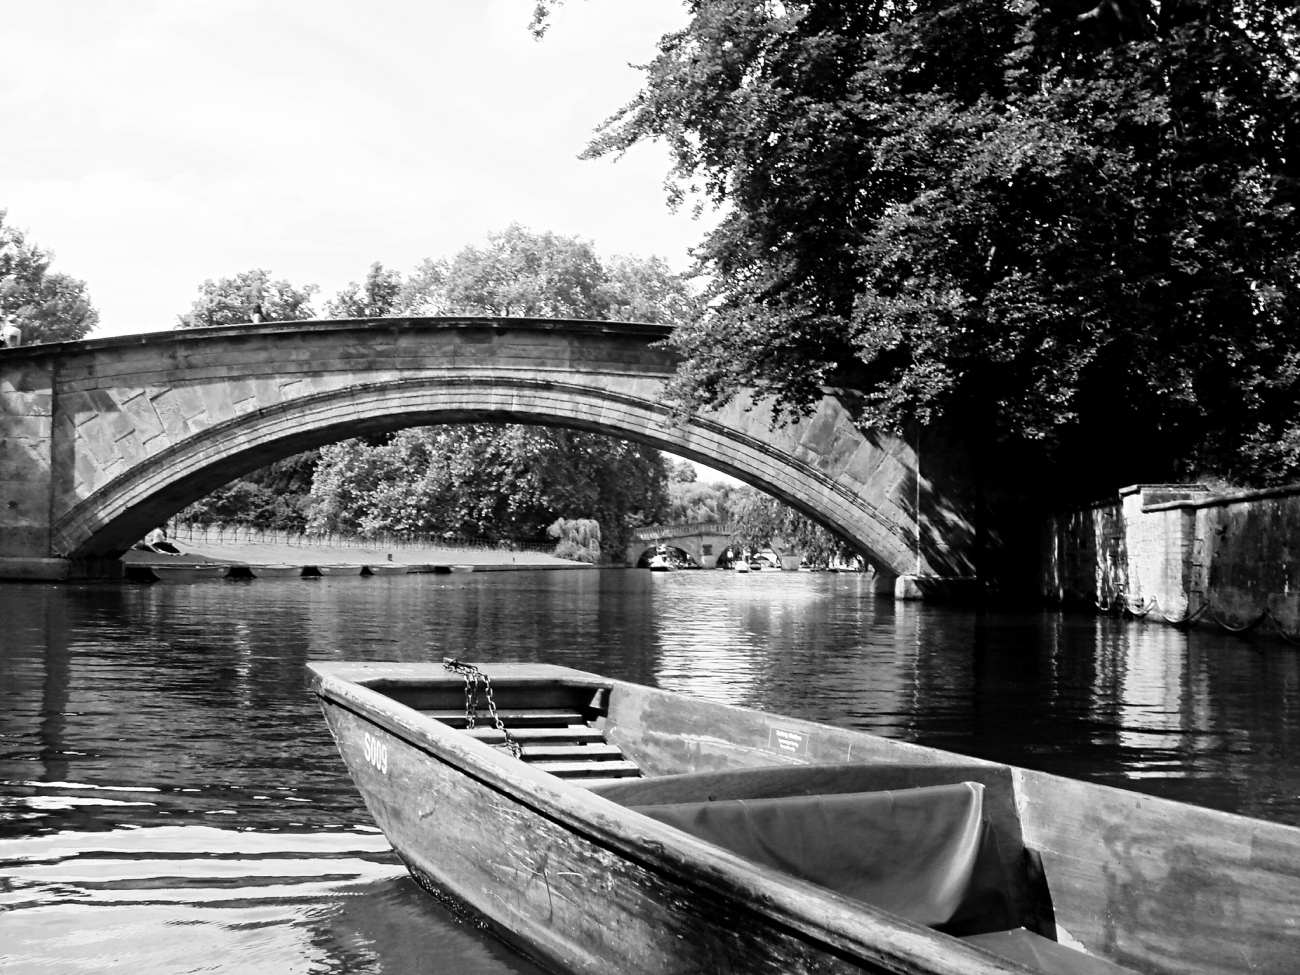 Scenes from a Boat, Cambridge